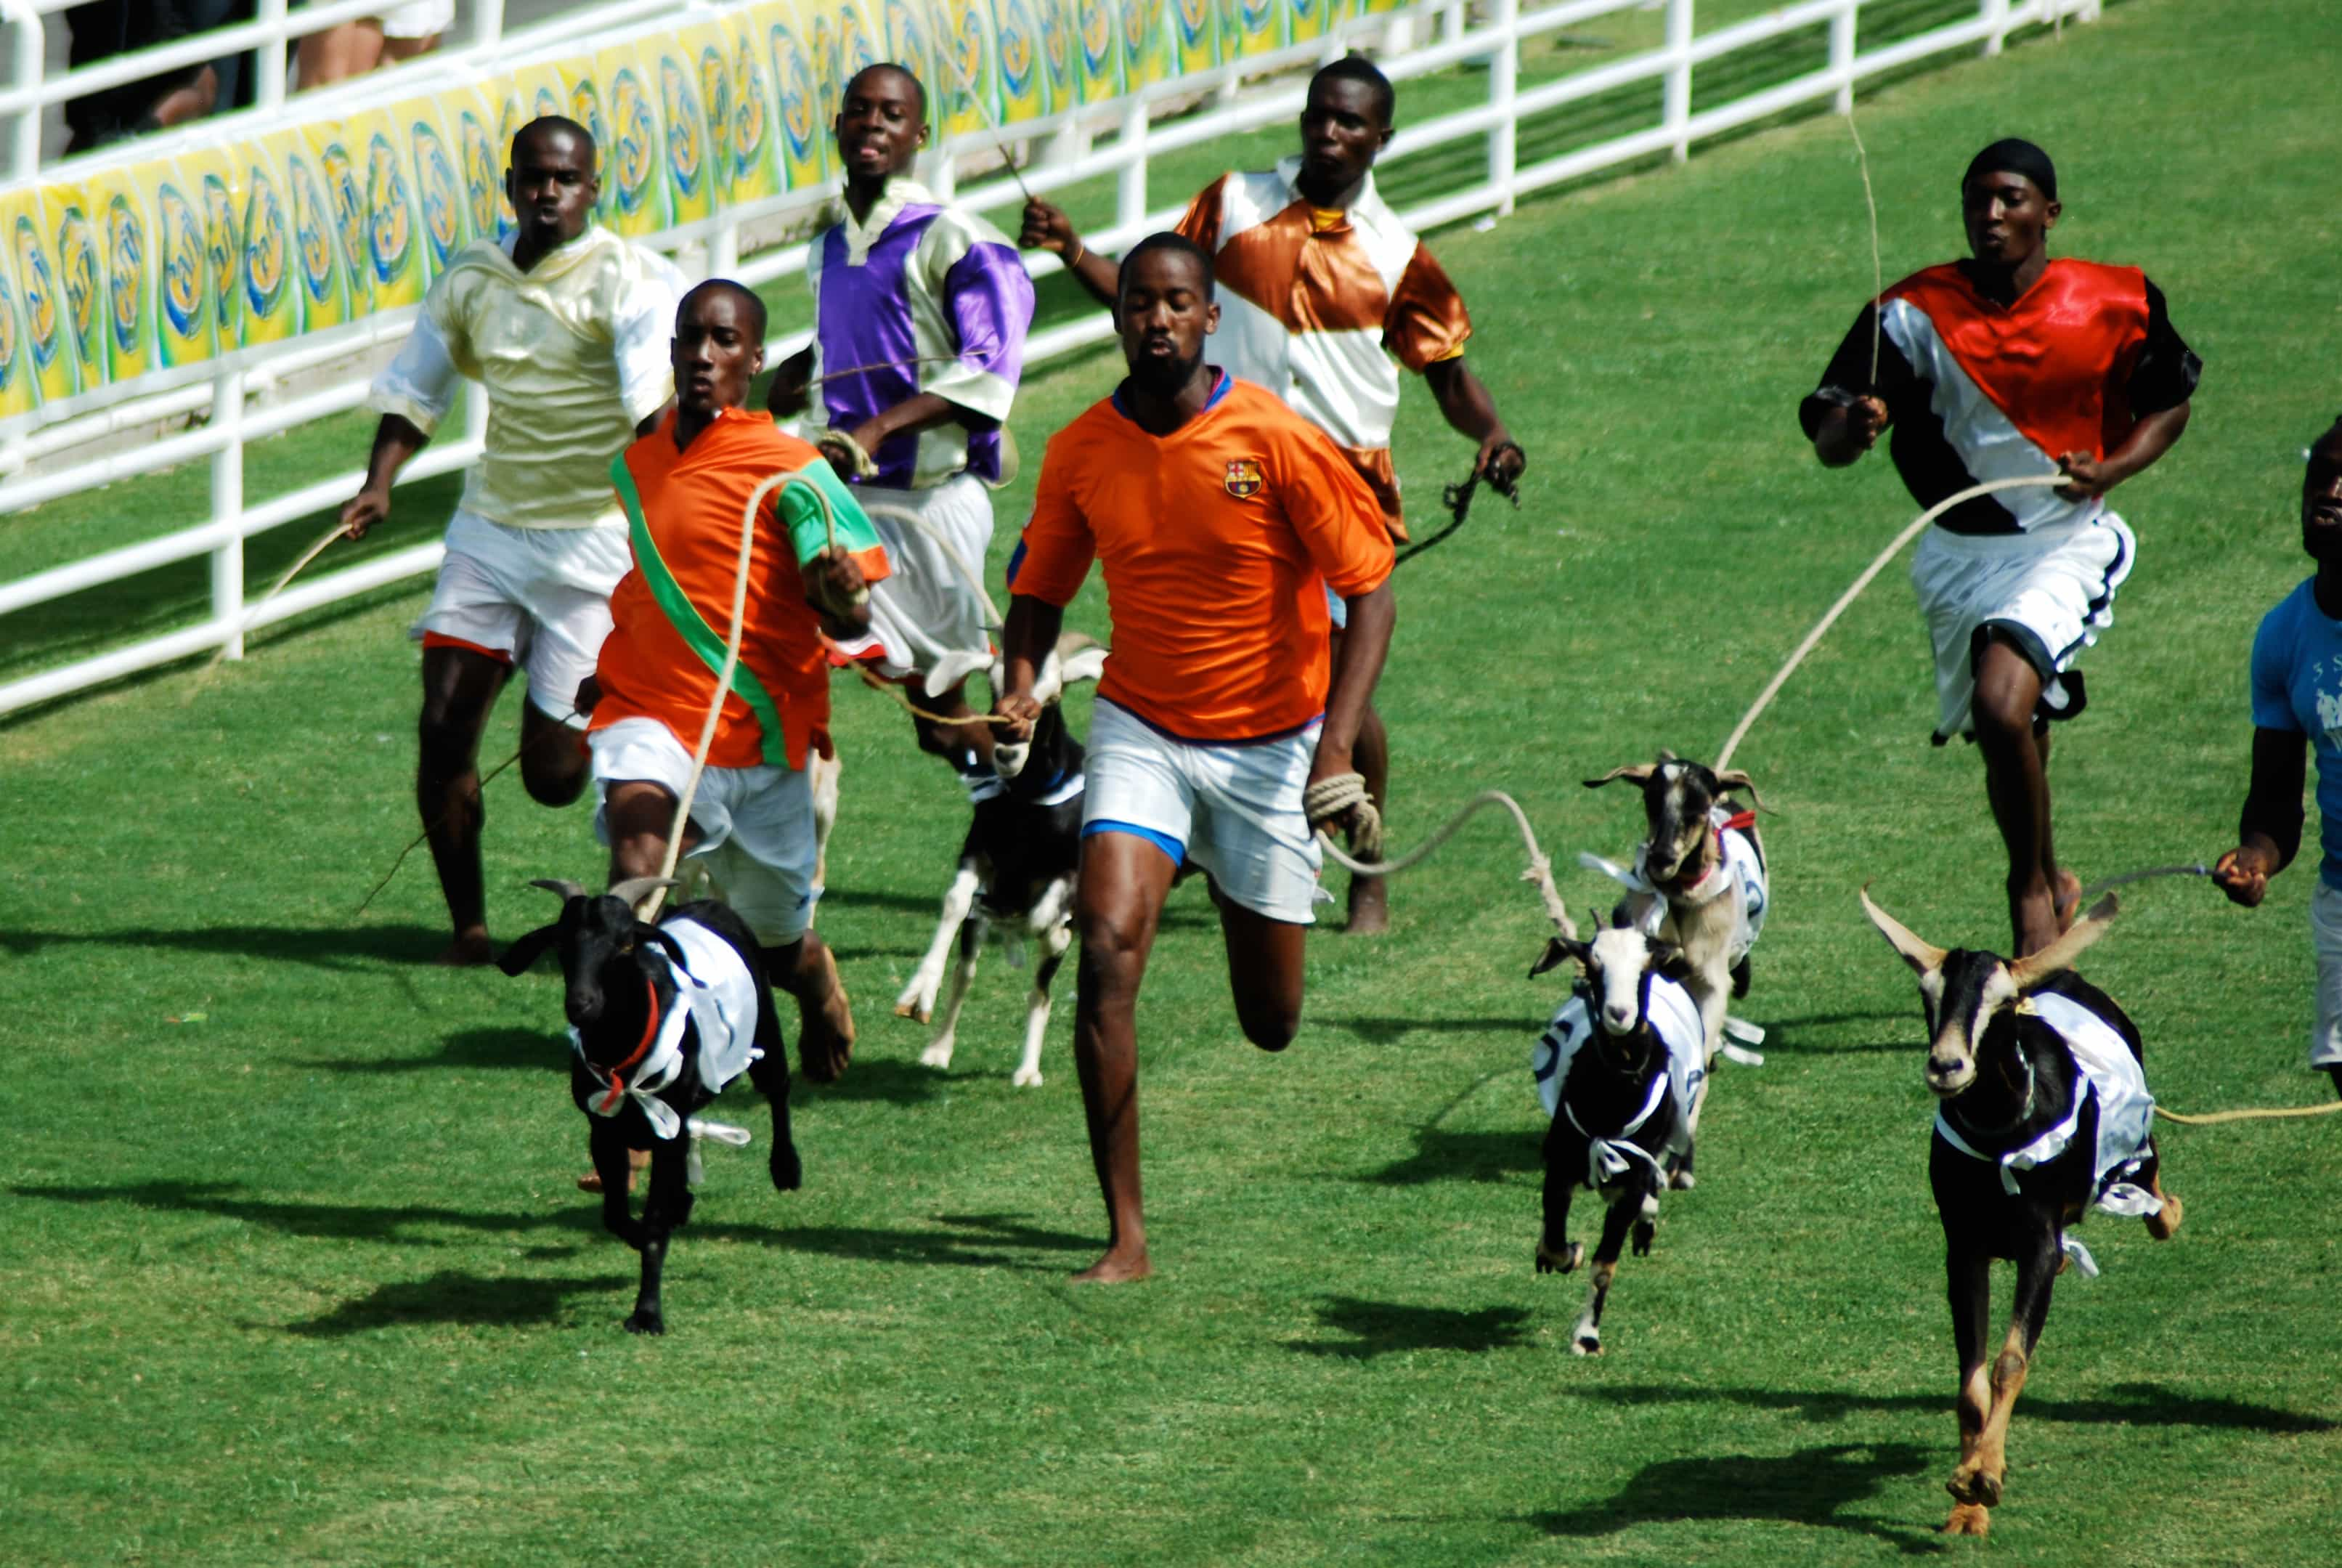 Easter Tuesday goat races, Buccoo | Credit: Flickr user Kate Nevens